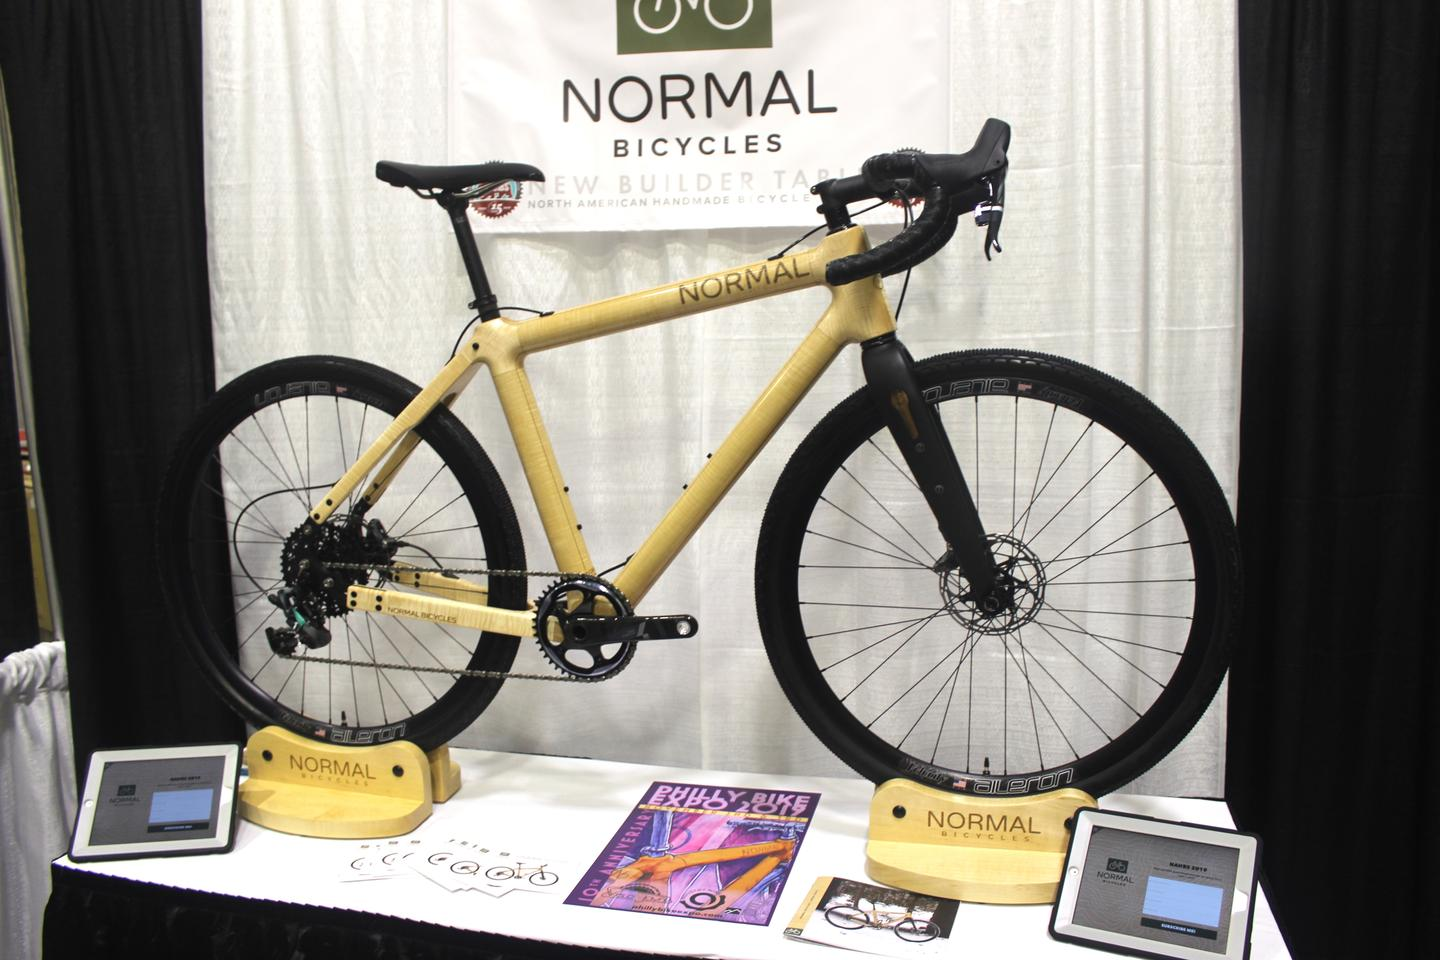 Normal Bicycles' custom gravel bike is worth about $6,000